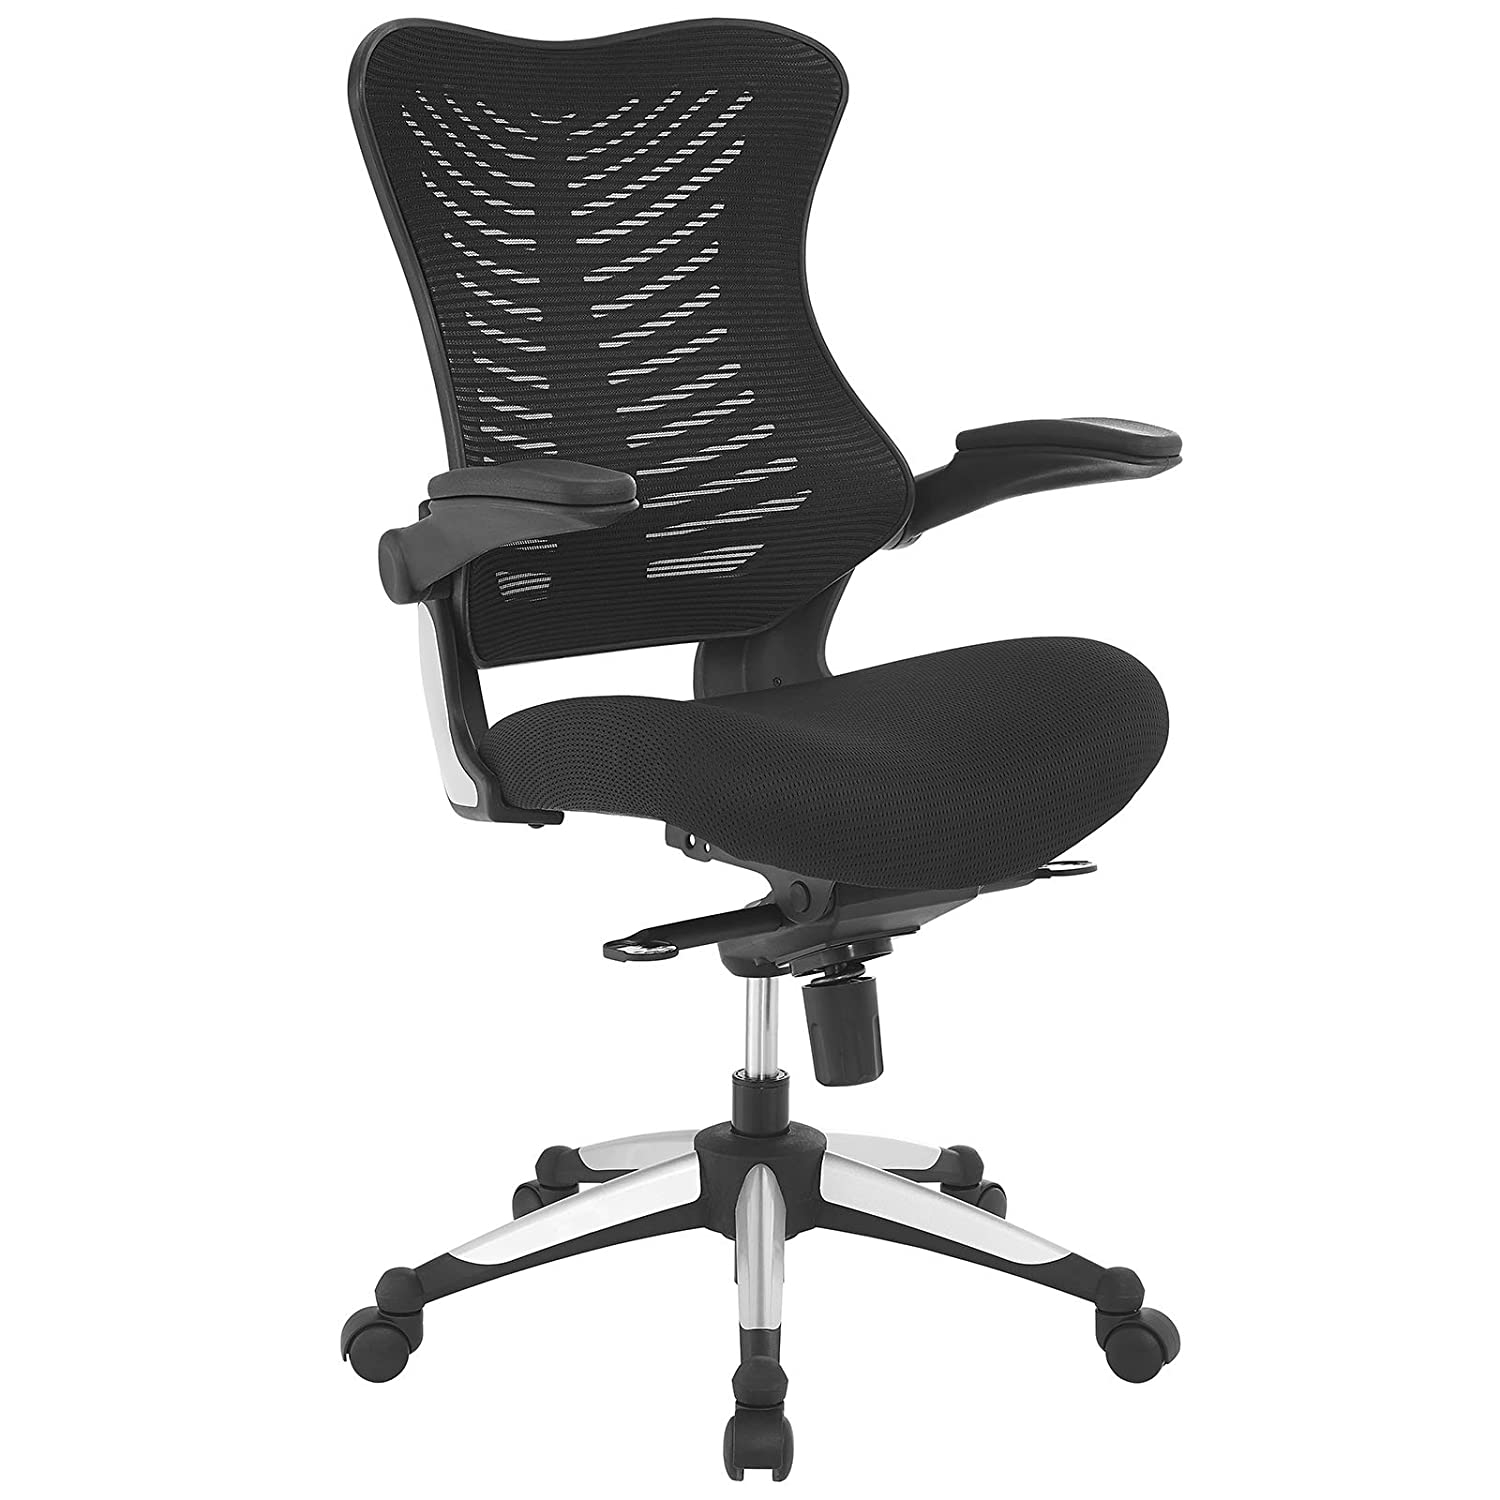 Office Chair Modway EEI-2285-BLK Charge Ergonomic Managerial Mesh Office Chair with Flip-Up Padded Arms, Black